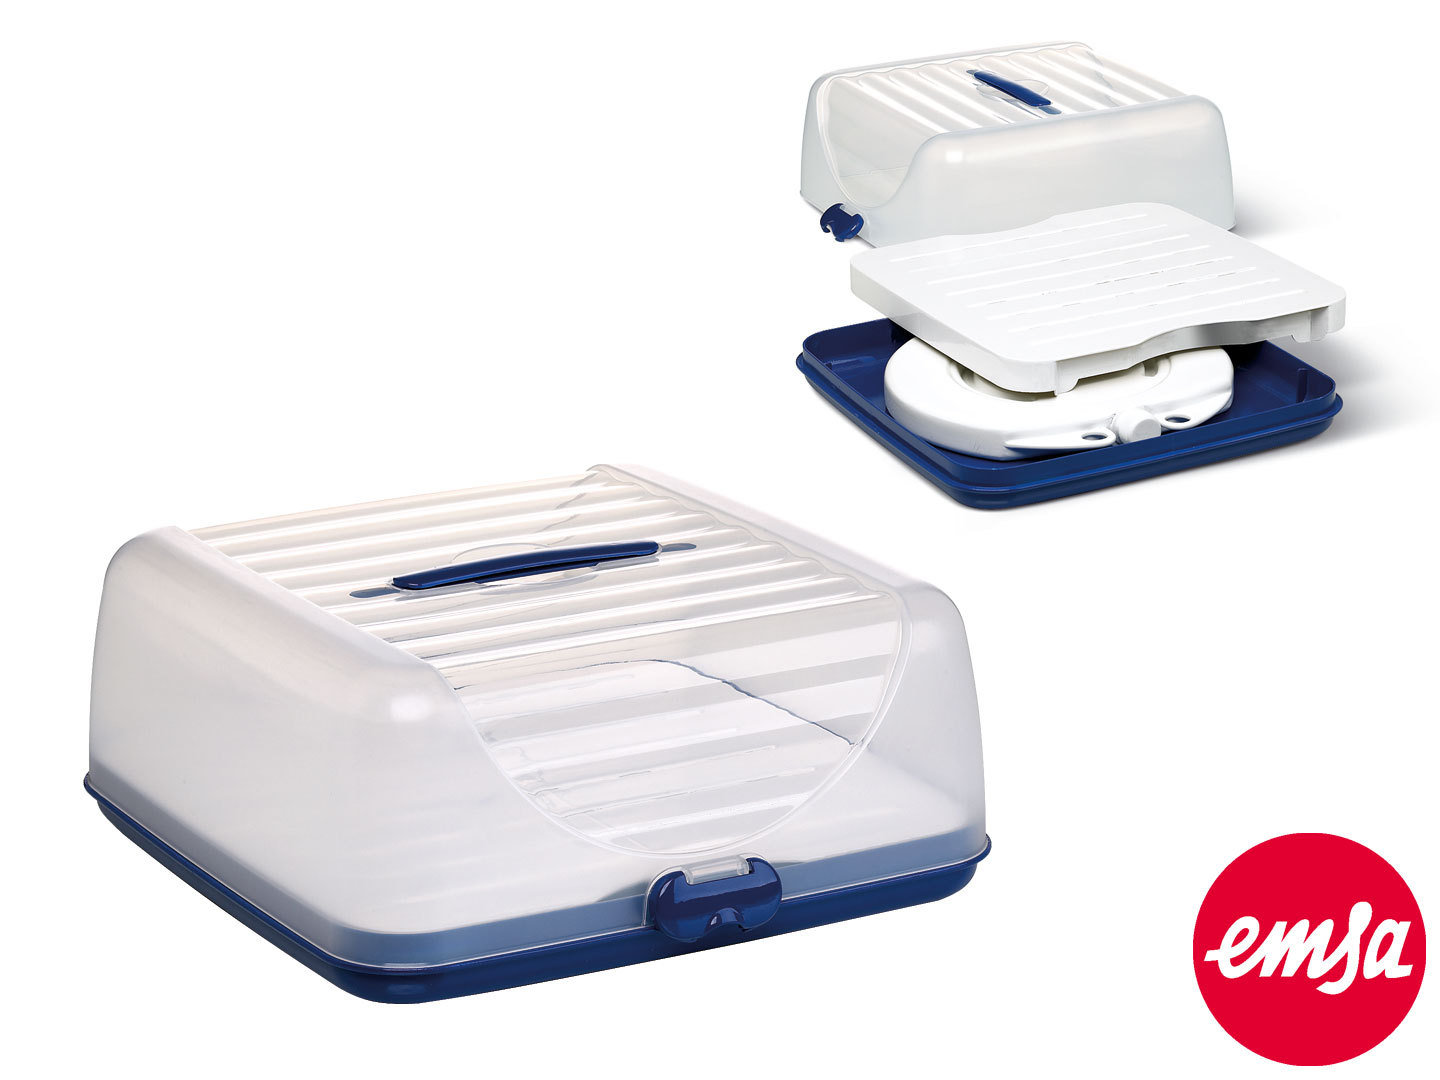 EMSA Partybutler Plus SUPERLINE eckig 36 cm mit Thermo-Akku